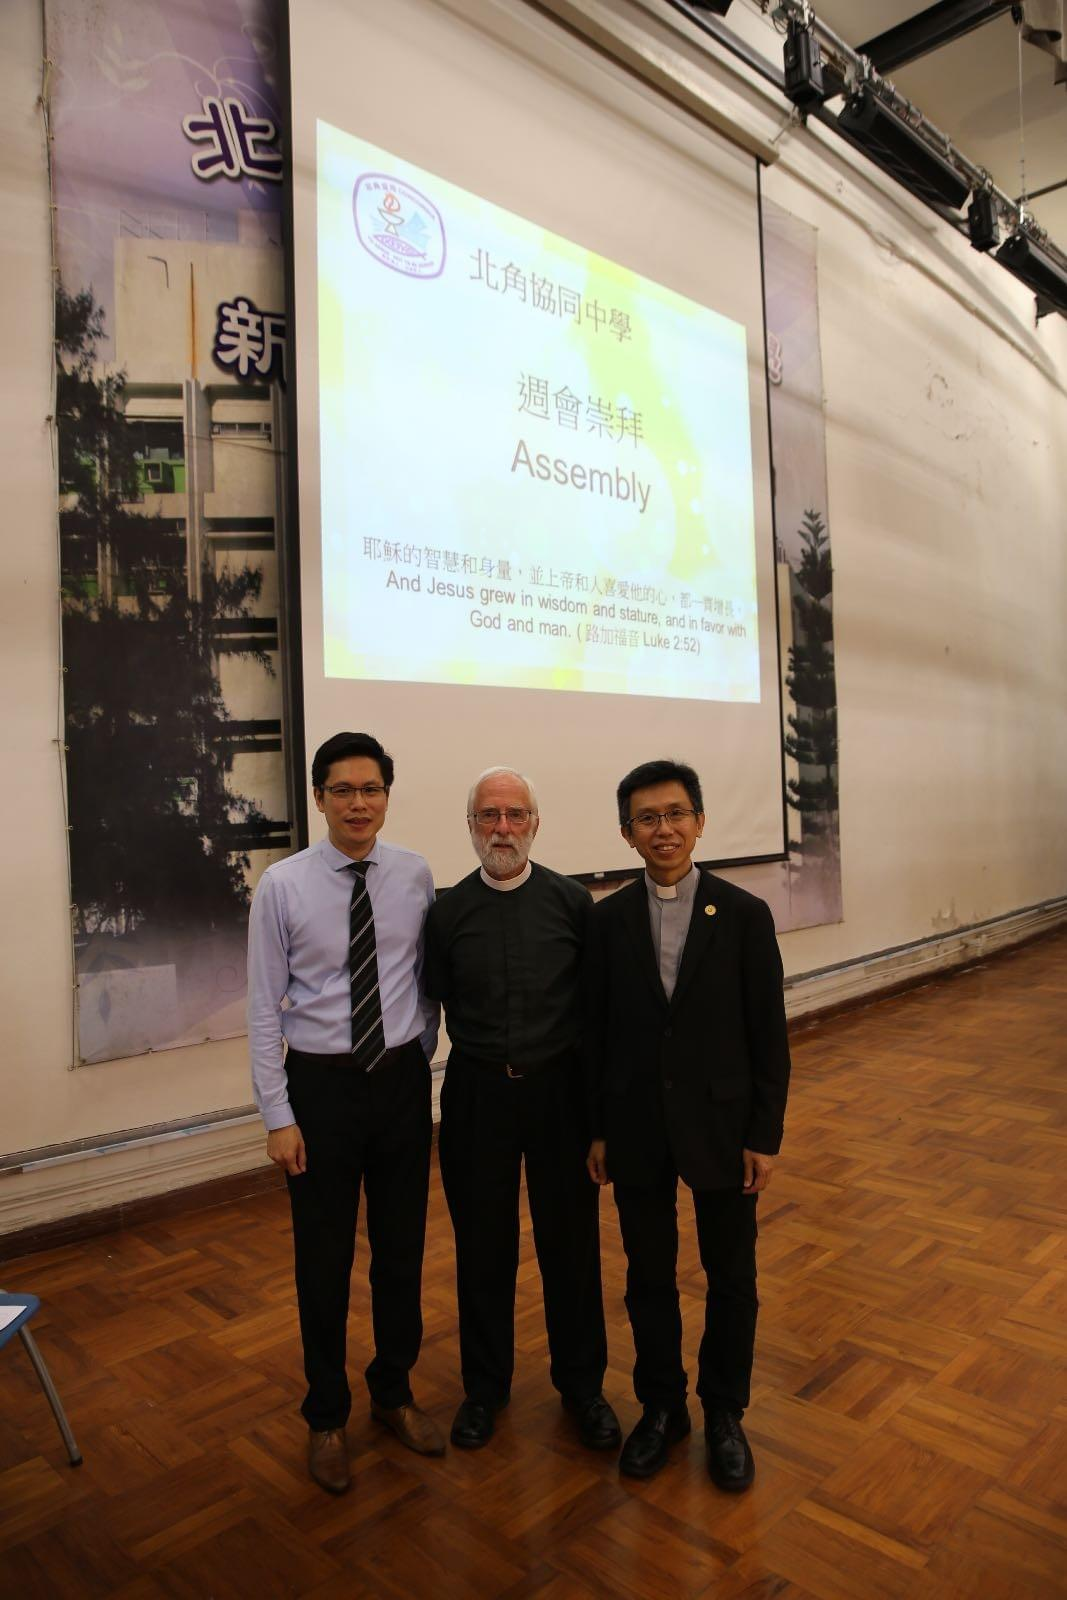 Rev. Dr. Richard CARTER   [middle], Rev. Paul CHEUNG [left], Rev. Simon KWAN [right]